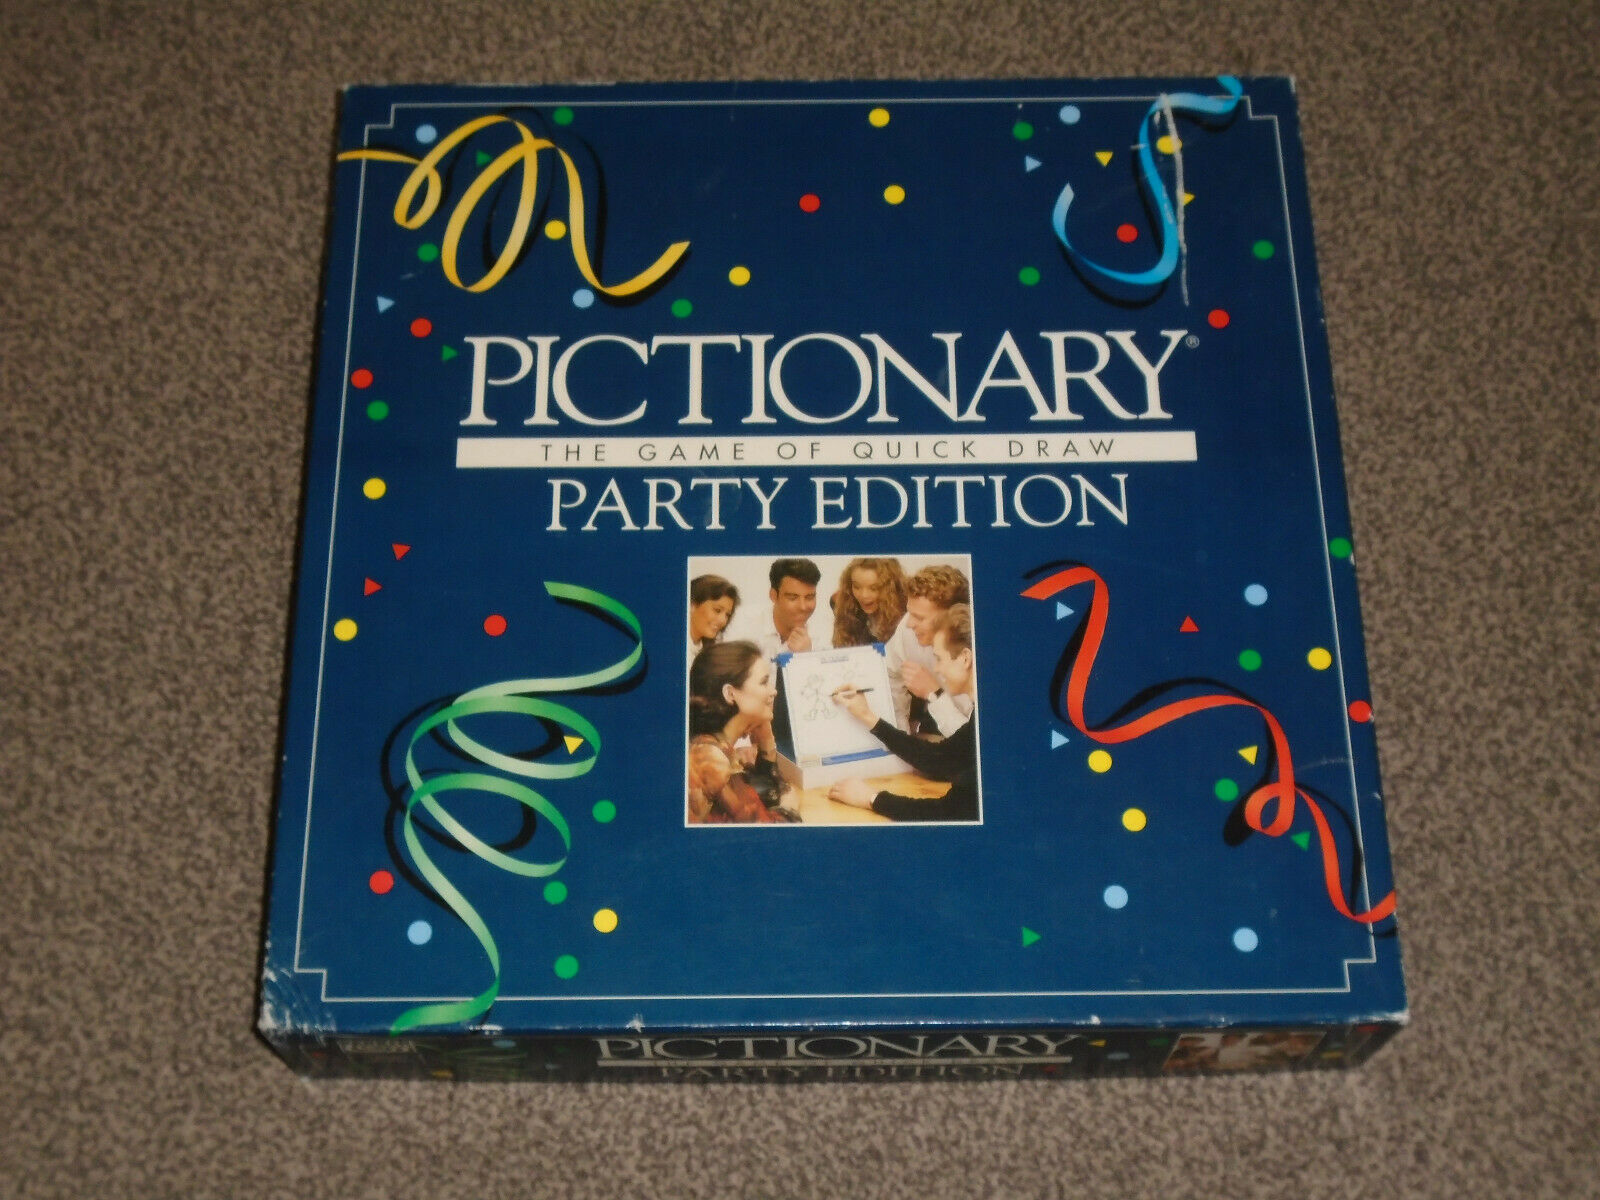 PICTIONARY -THE PARTY EDITION GAME - 1993 By PARKER - In VGC (FREE UK P&P)